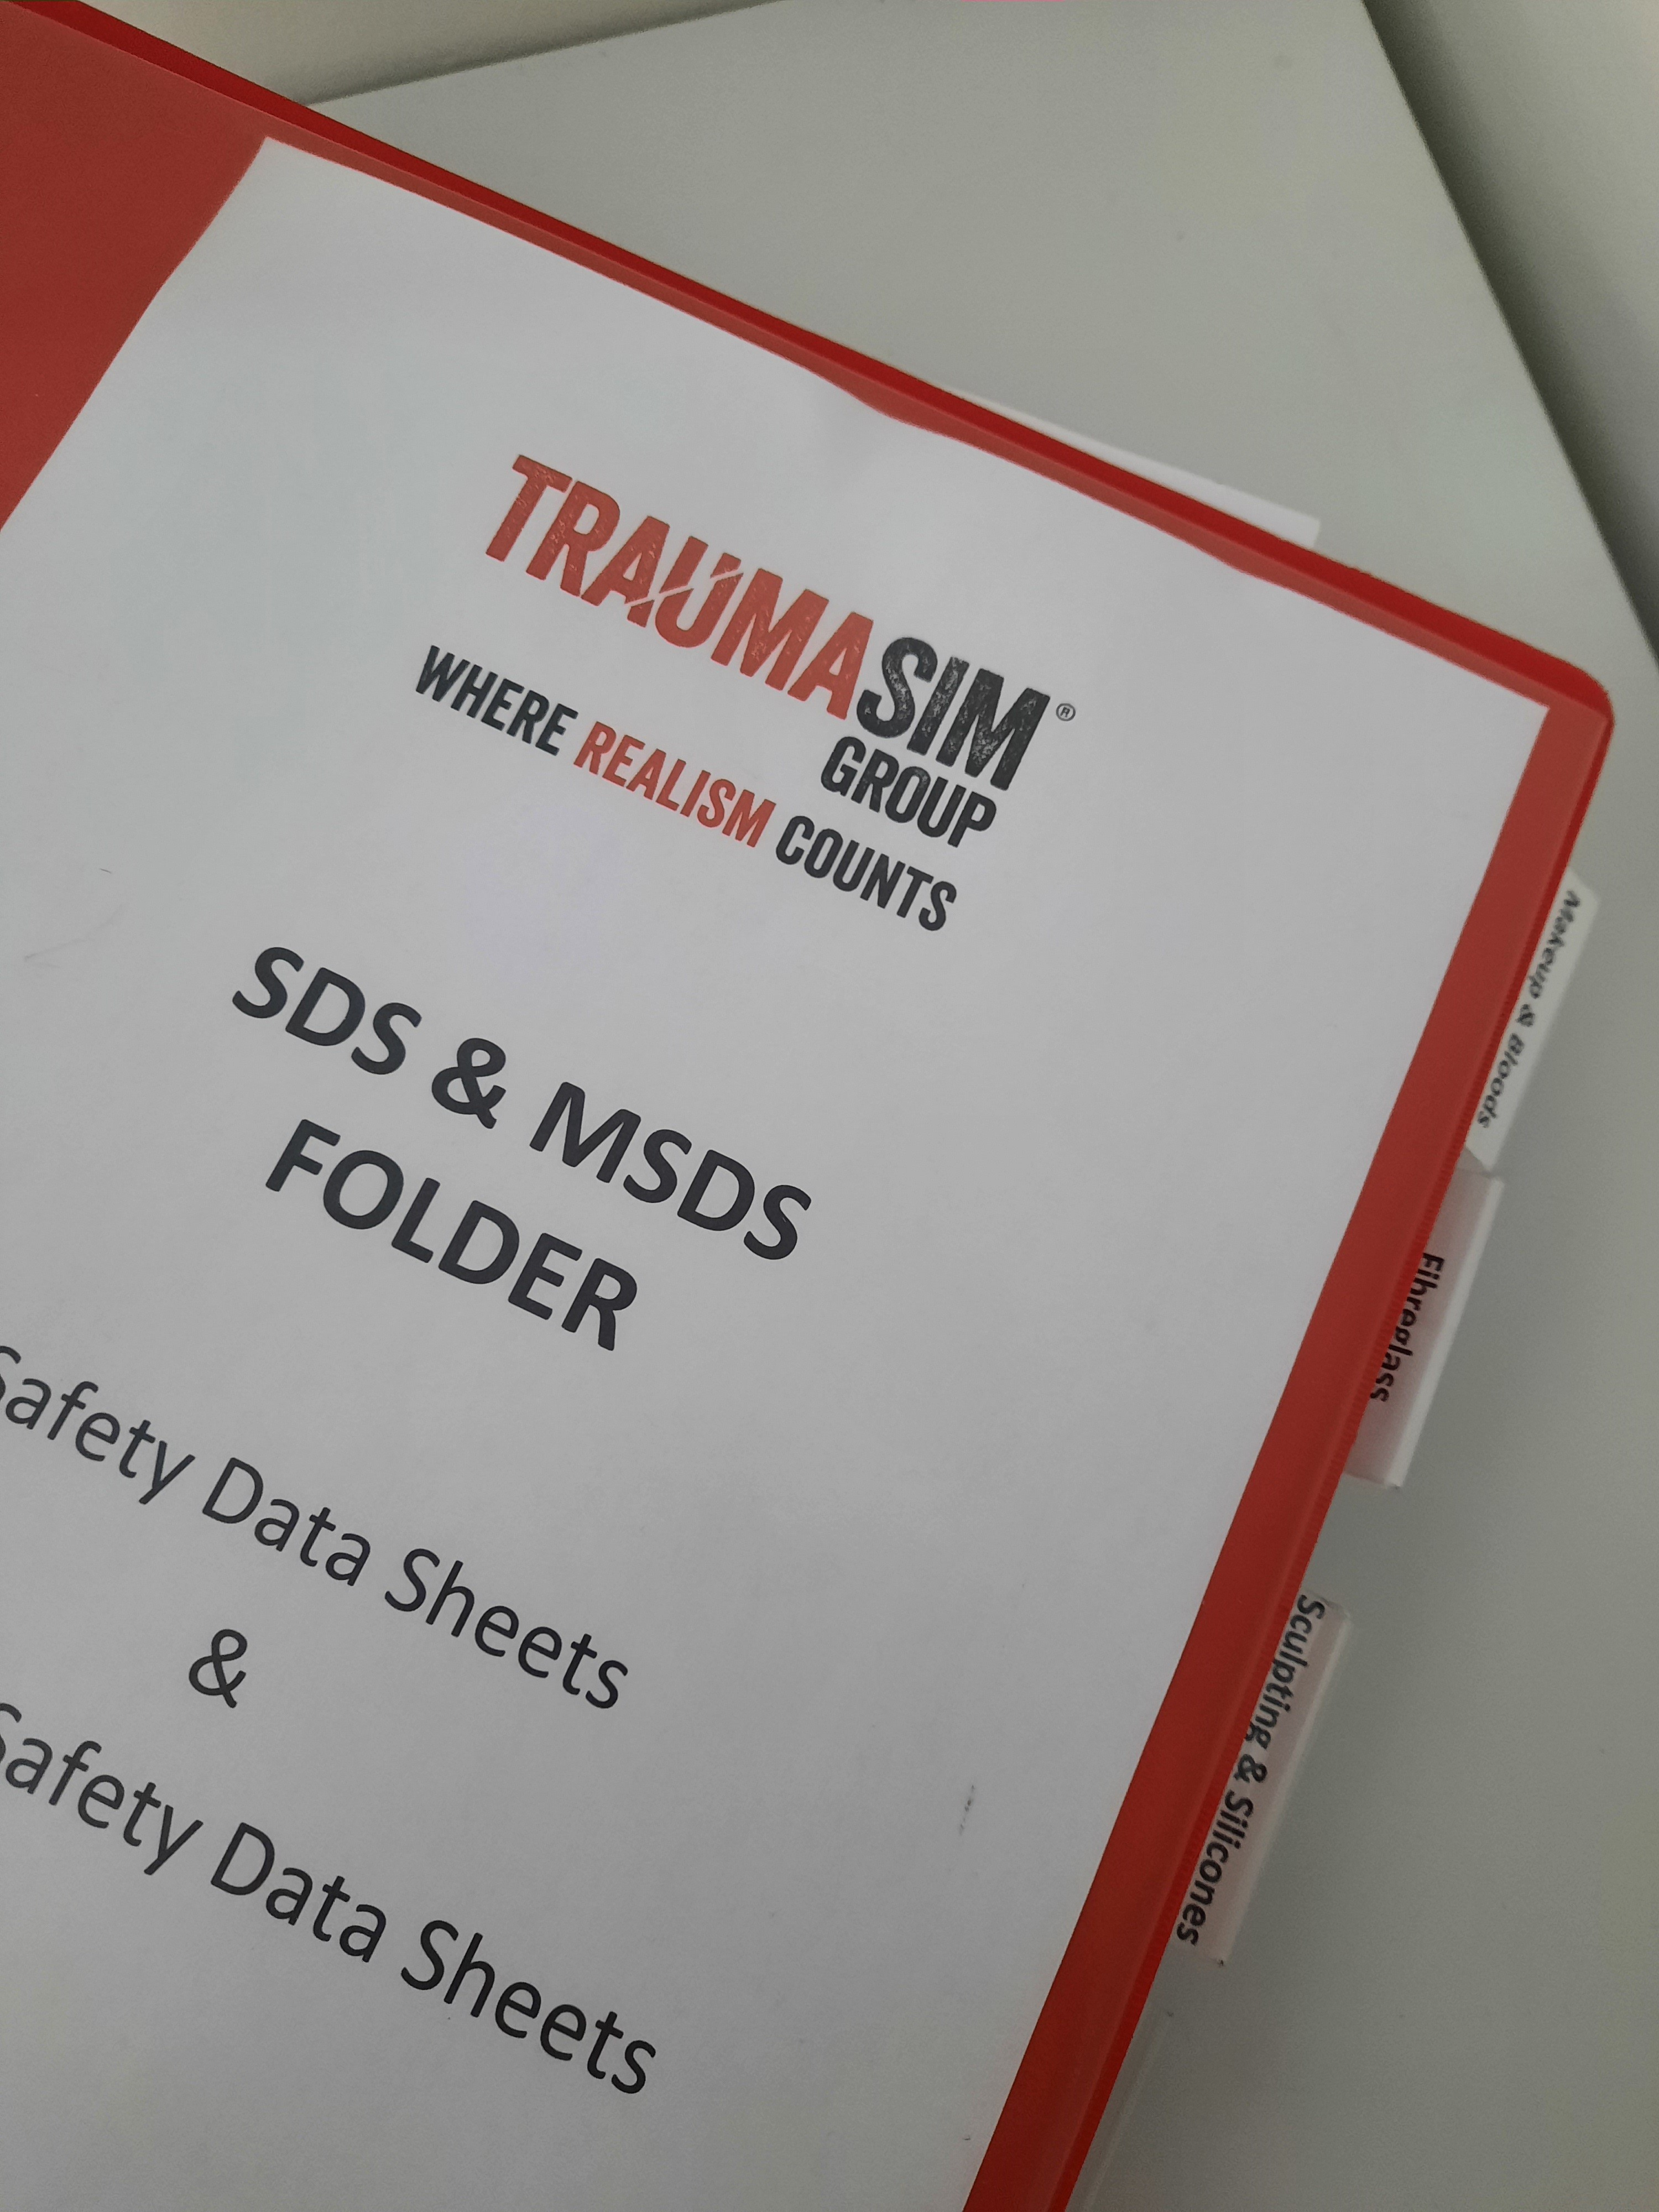 TraumaSim Group SDS Folder for materials used in the workplace